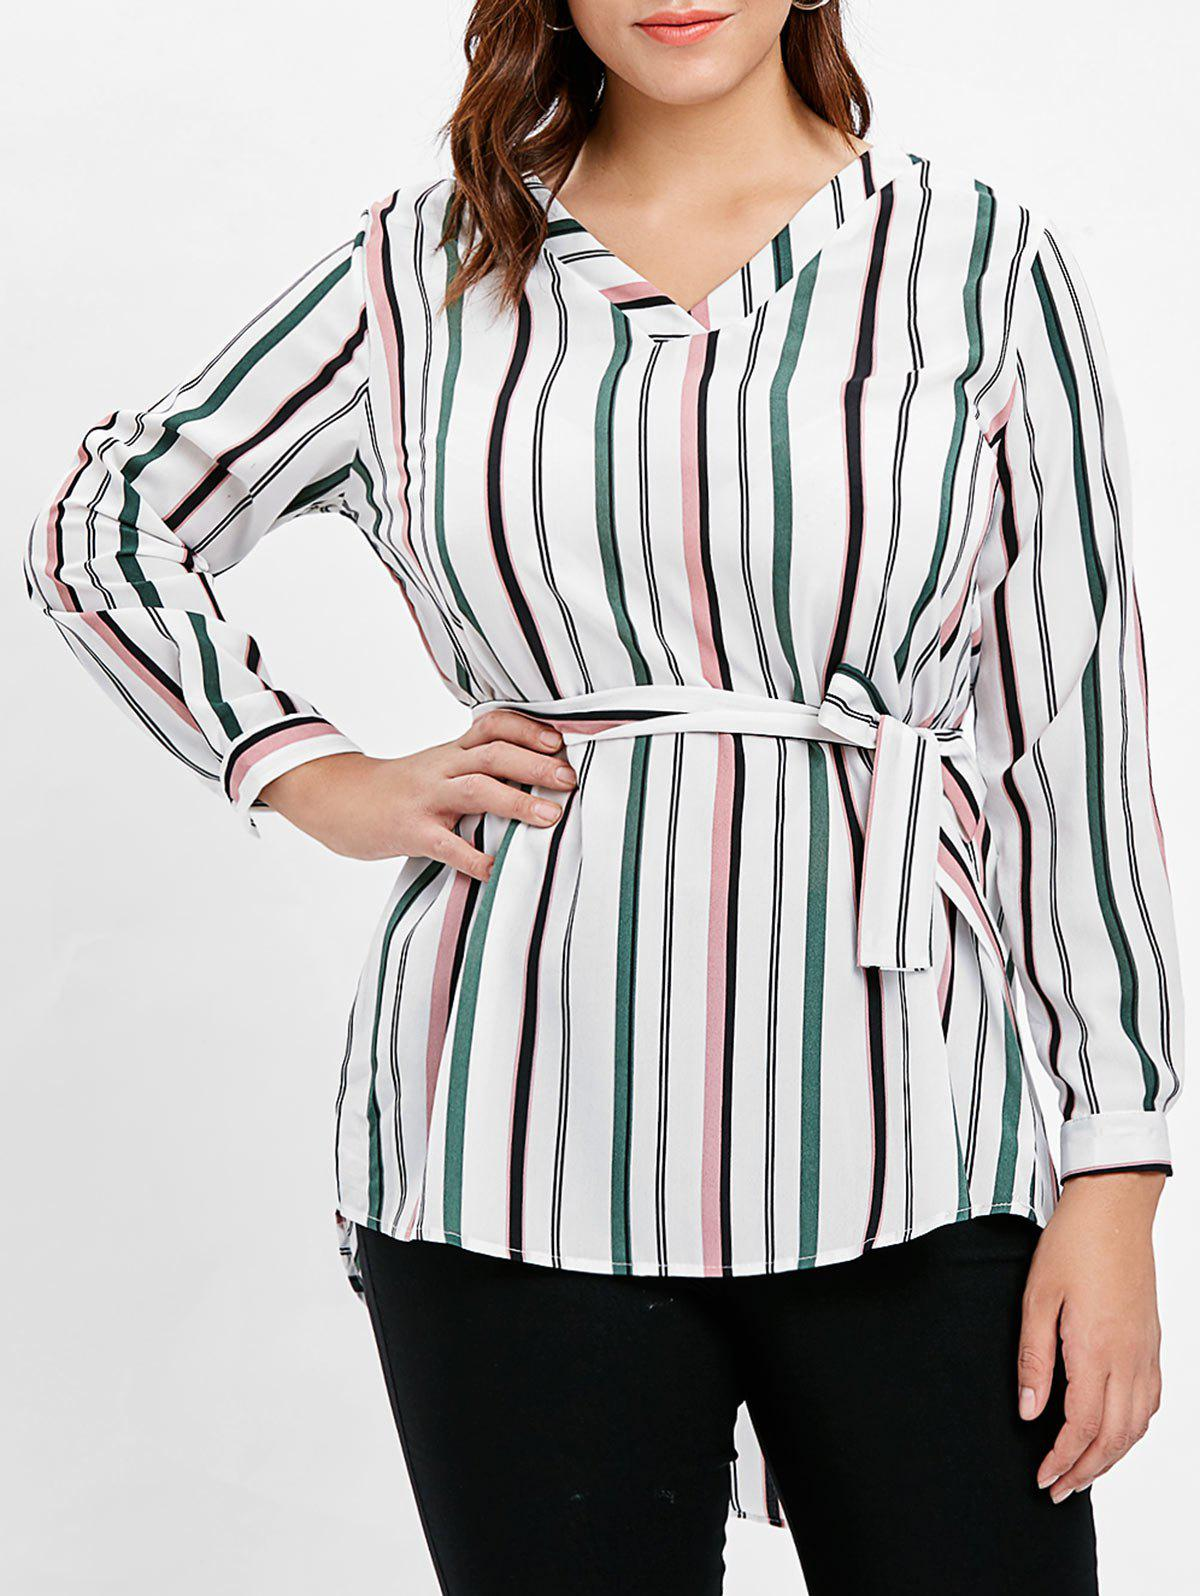 59a3ac3530fefe 75% OFF] Striped Plus Size High Low Shirt With Belt | Rosegal